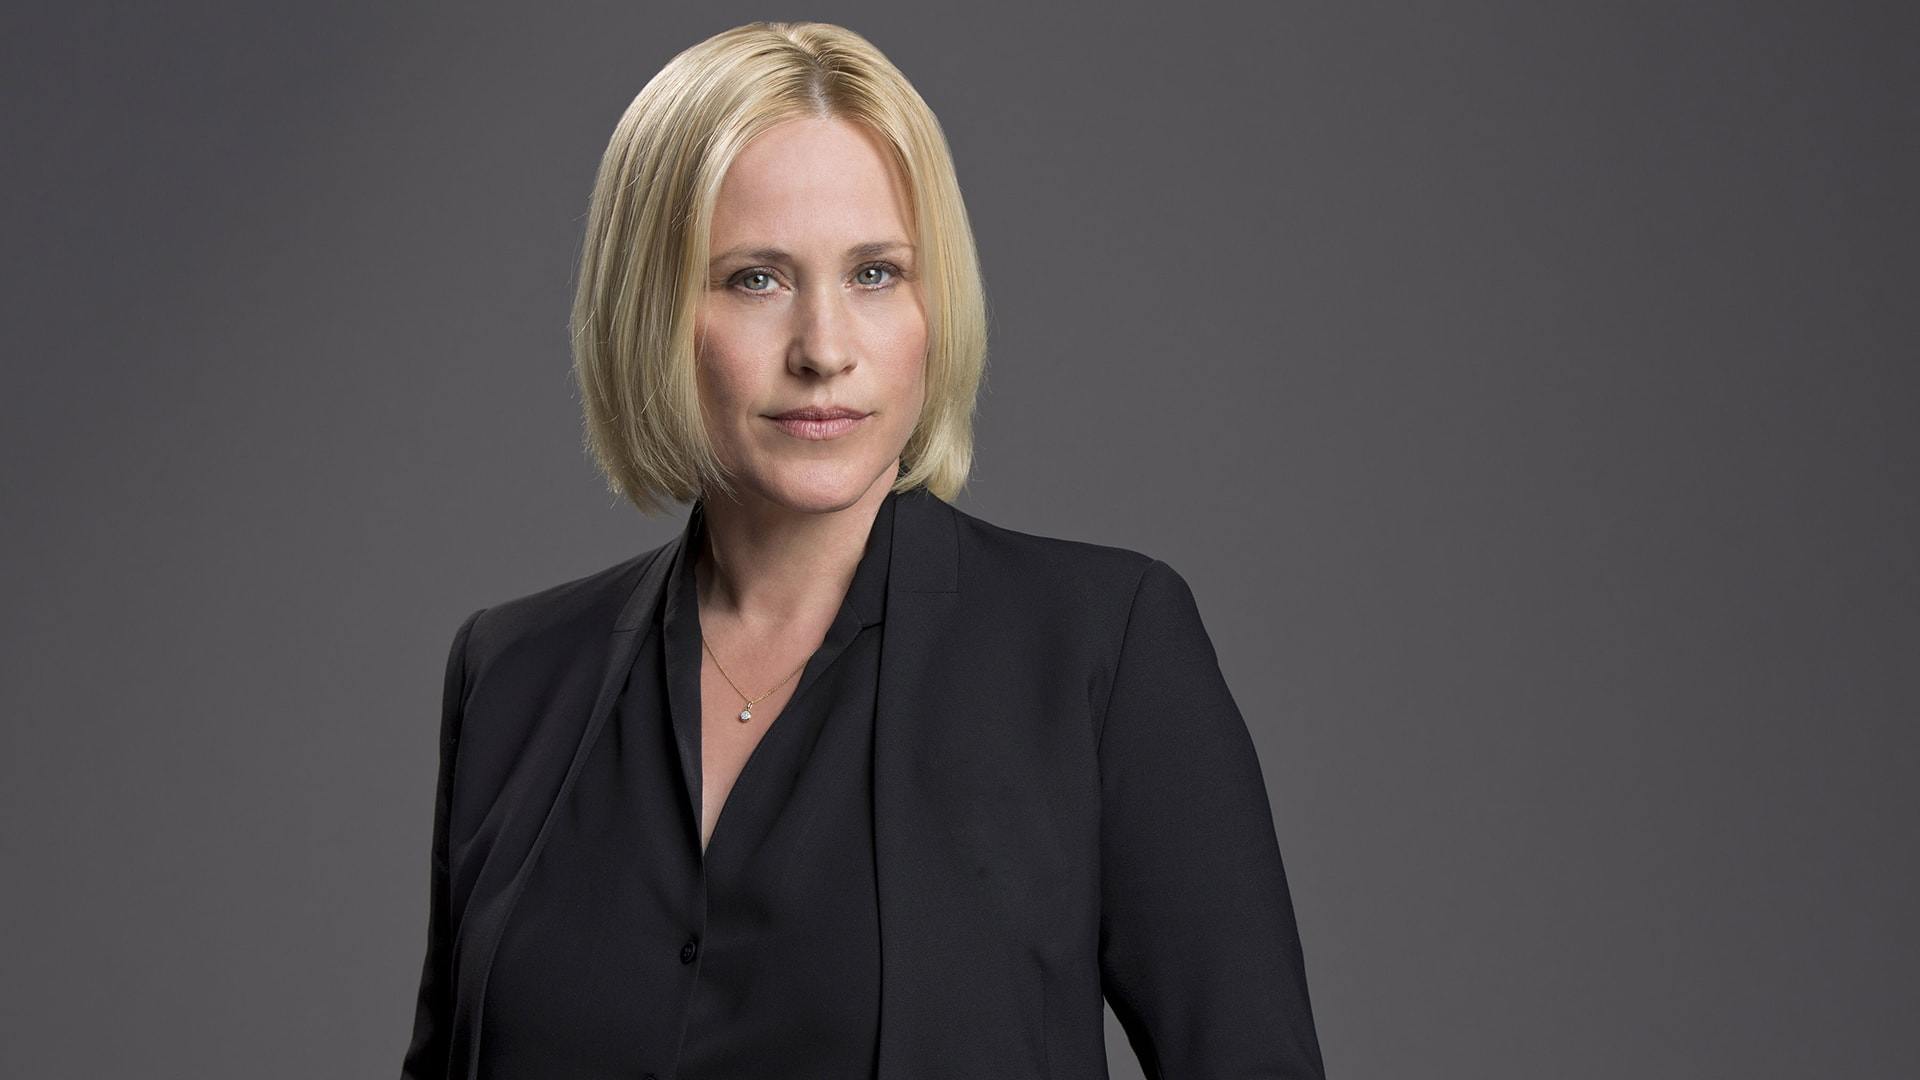 Patricia Arquette for mobile